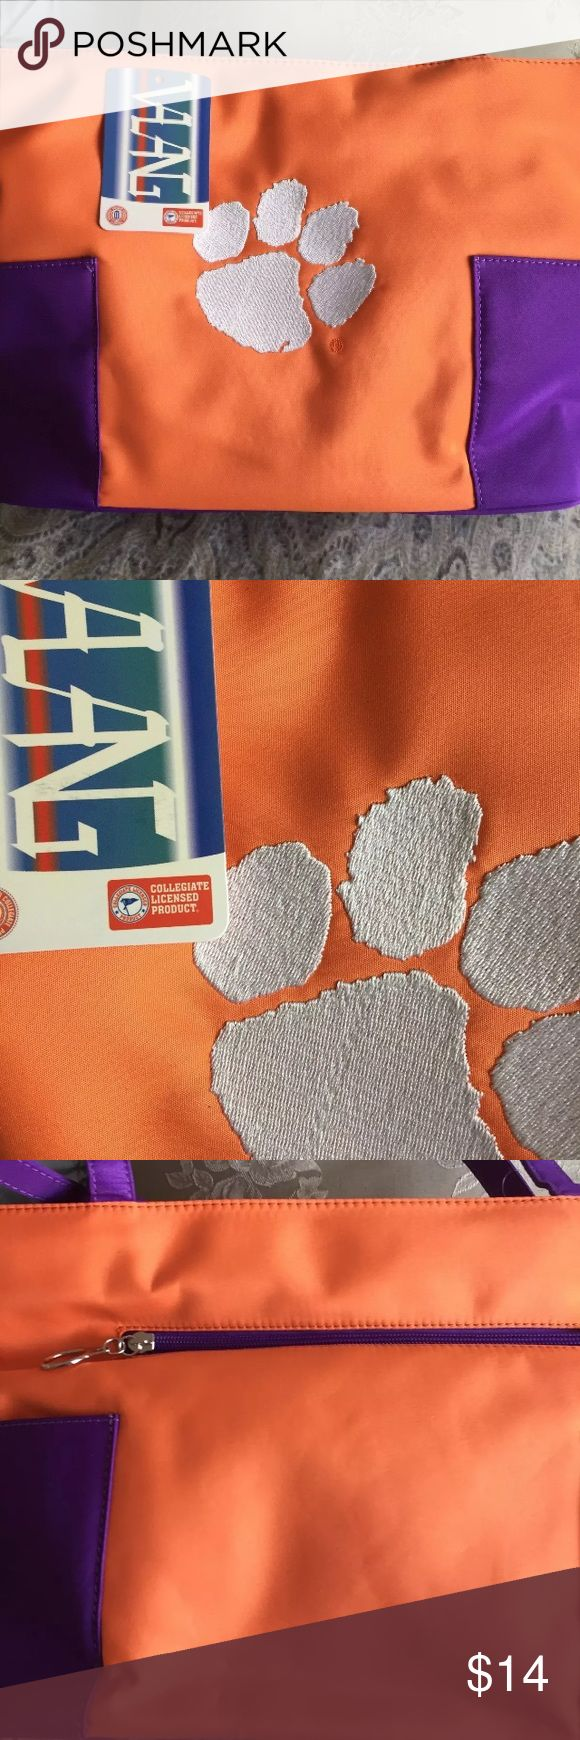 Clemson Tigers Orange Tote Bag Clemson Tigers Bag Purple and Orange Zippered Closure Velcro Pocket on Outside Nylon Like Fabric Neat and handy 14 by 9 by 4 inches Bags Totes